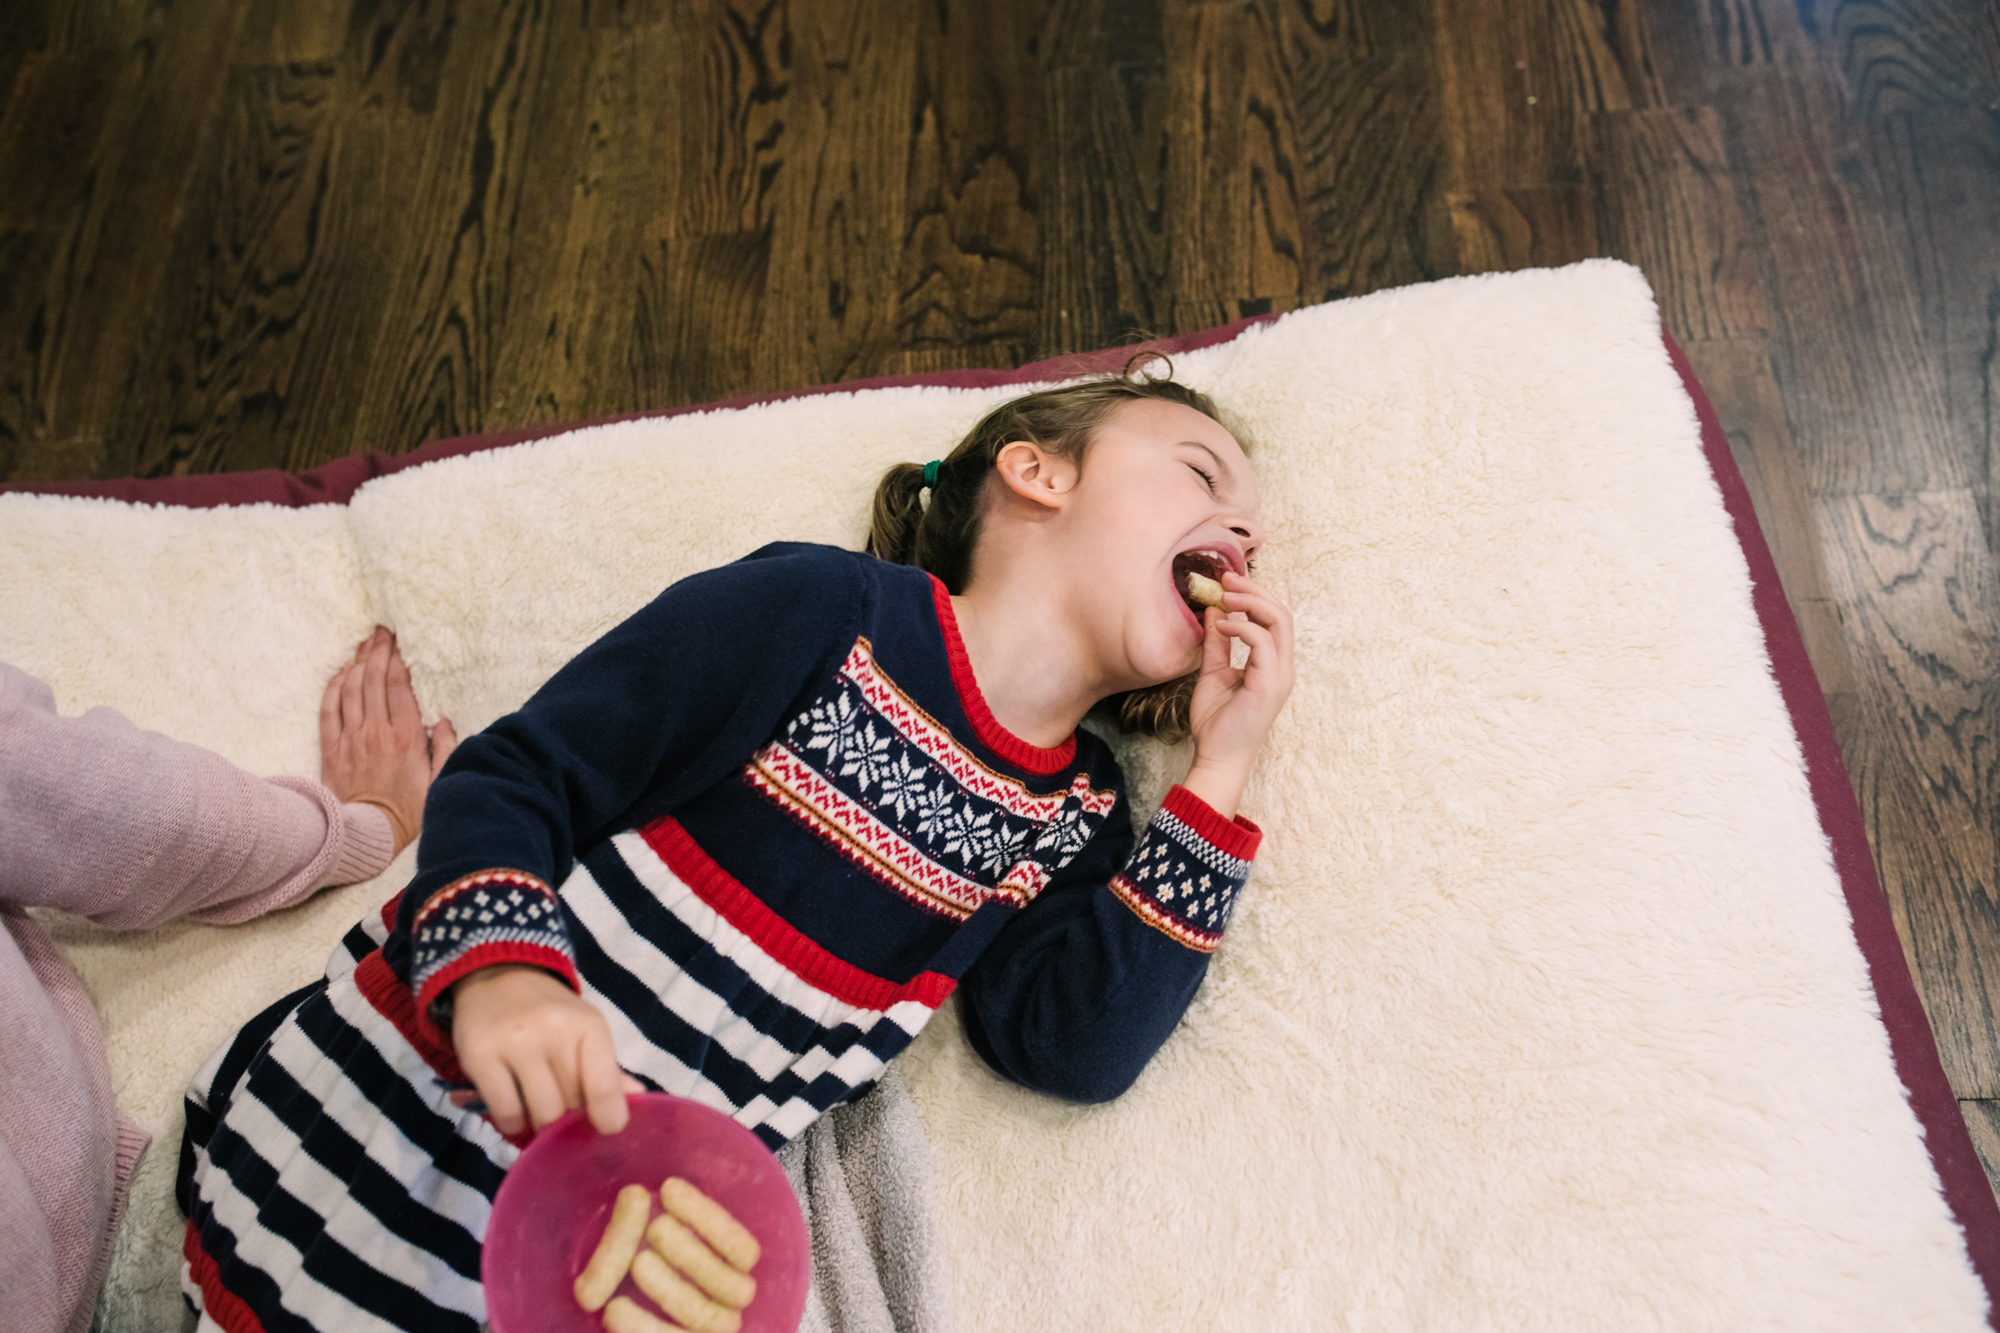 a young girl laughs while eating a snack and lying on a large dog bed during a documentary family photography session